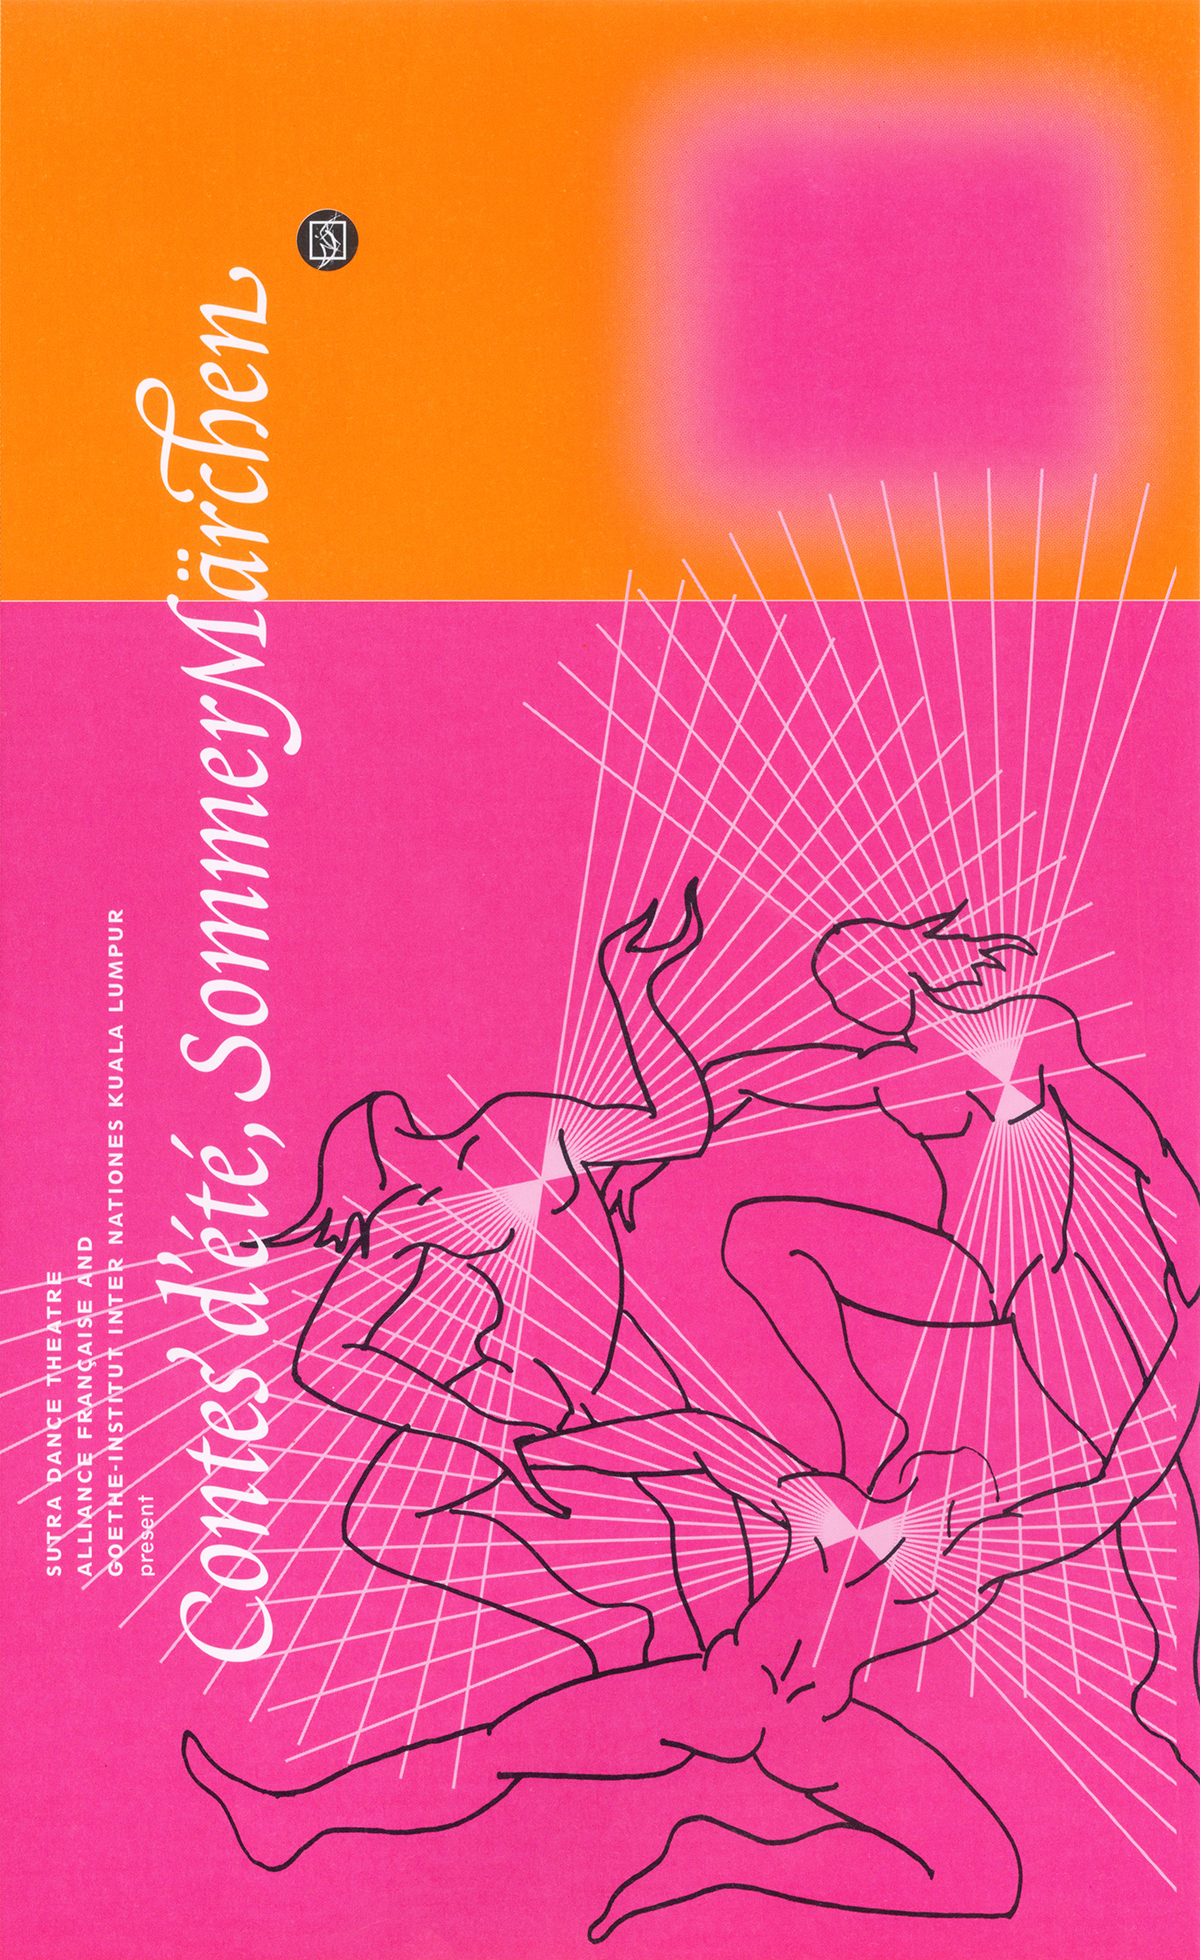 Poster for  Contes d'été, Sommer Märchen   (Summer Tales) , a work under  Sutra's Under the Stars 2003  series. During this early period, some high chroma compositions were explored.